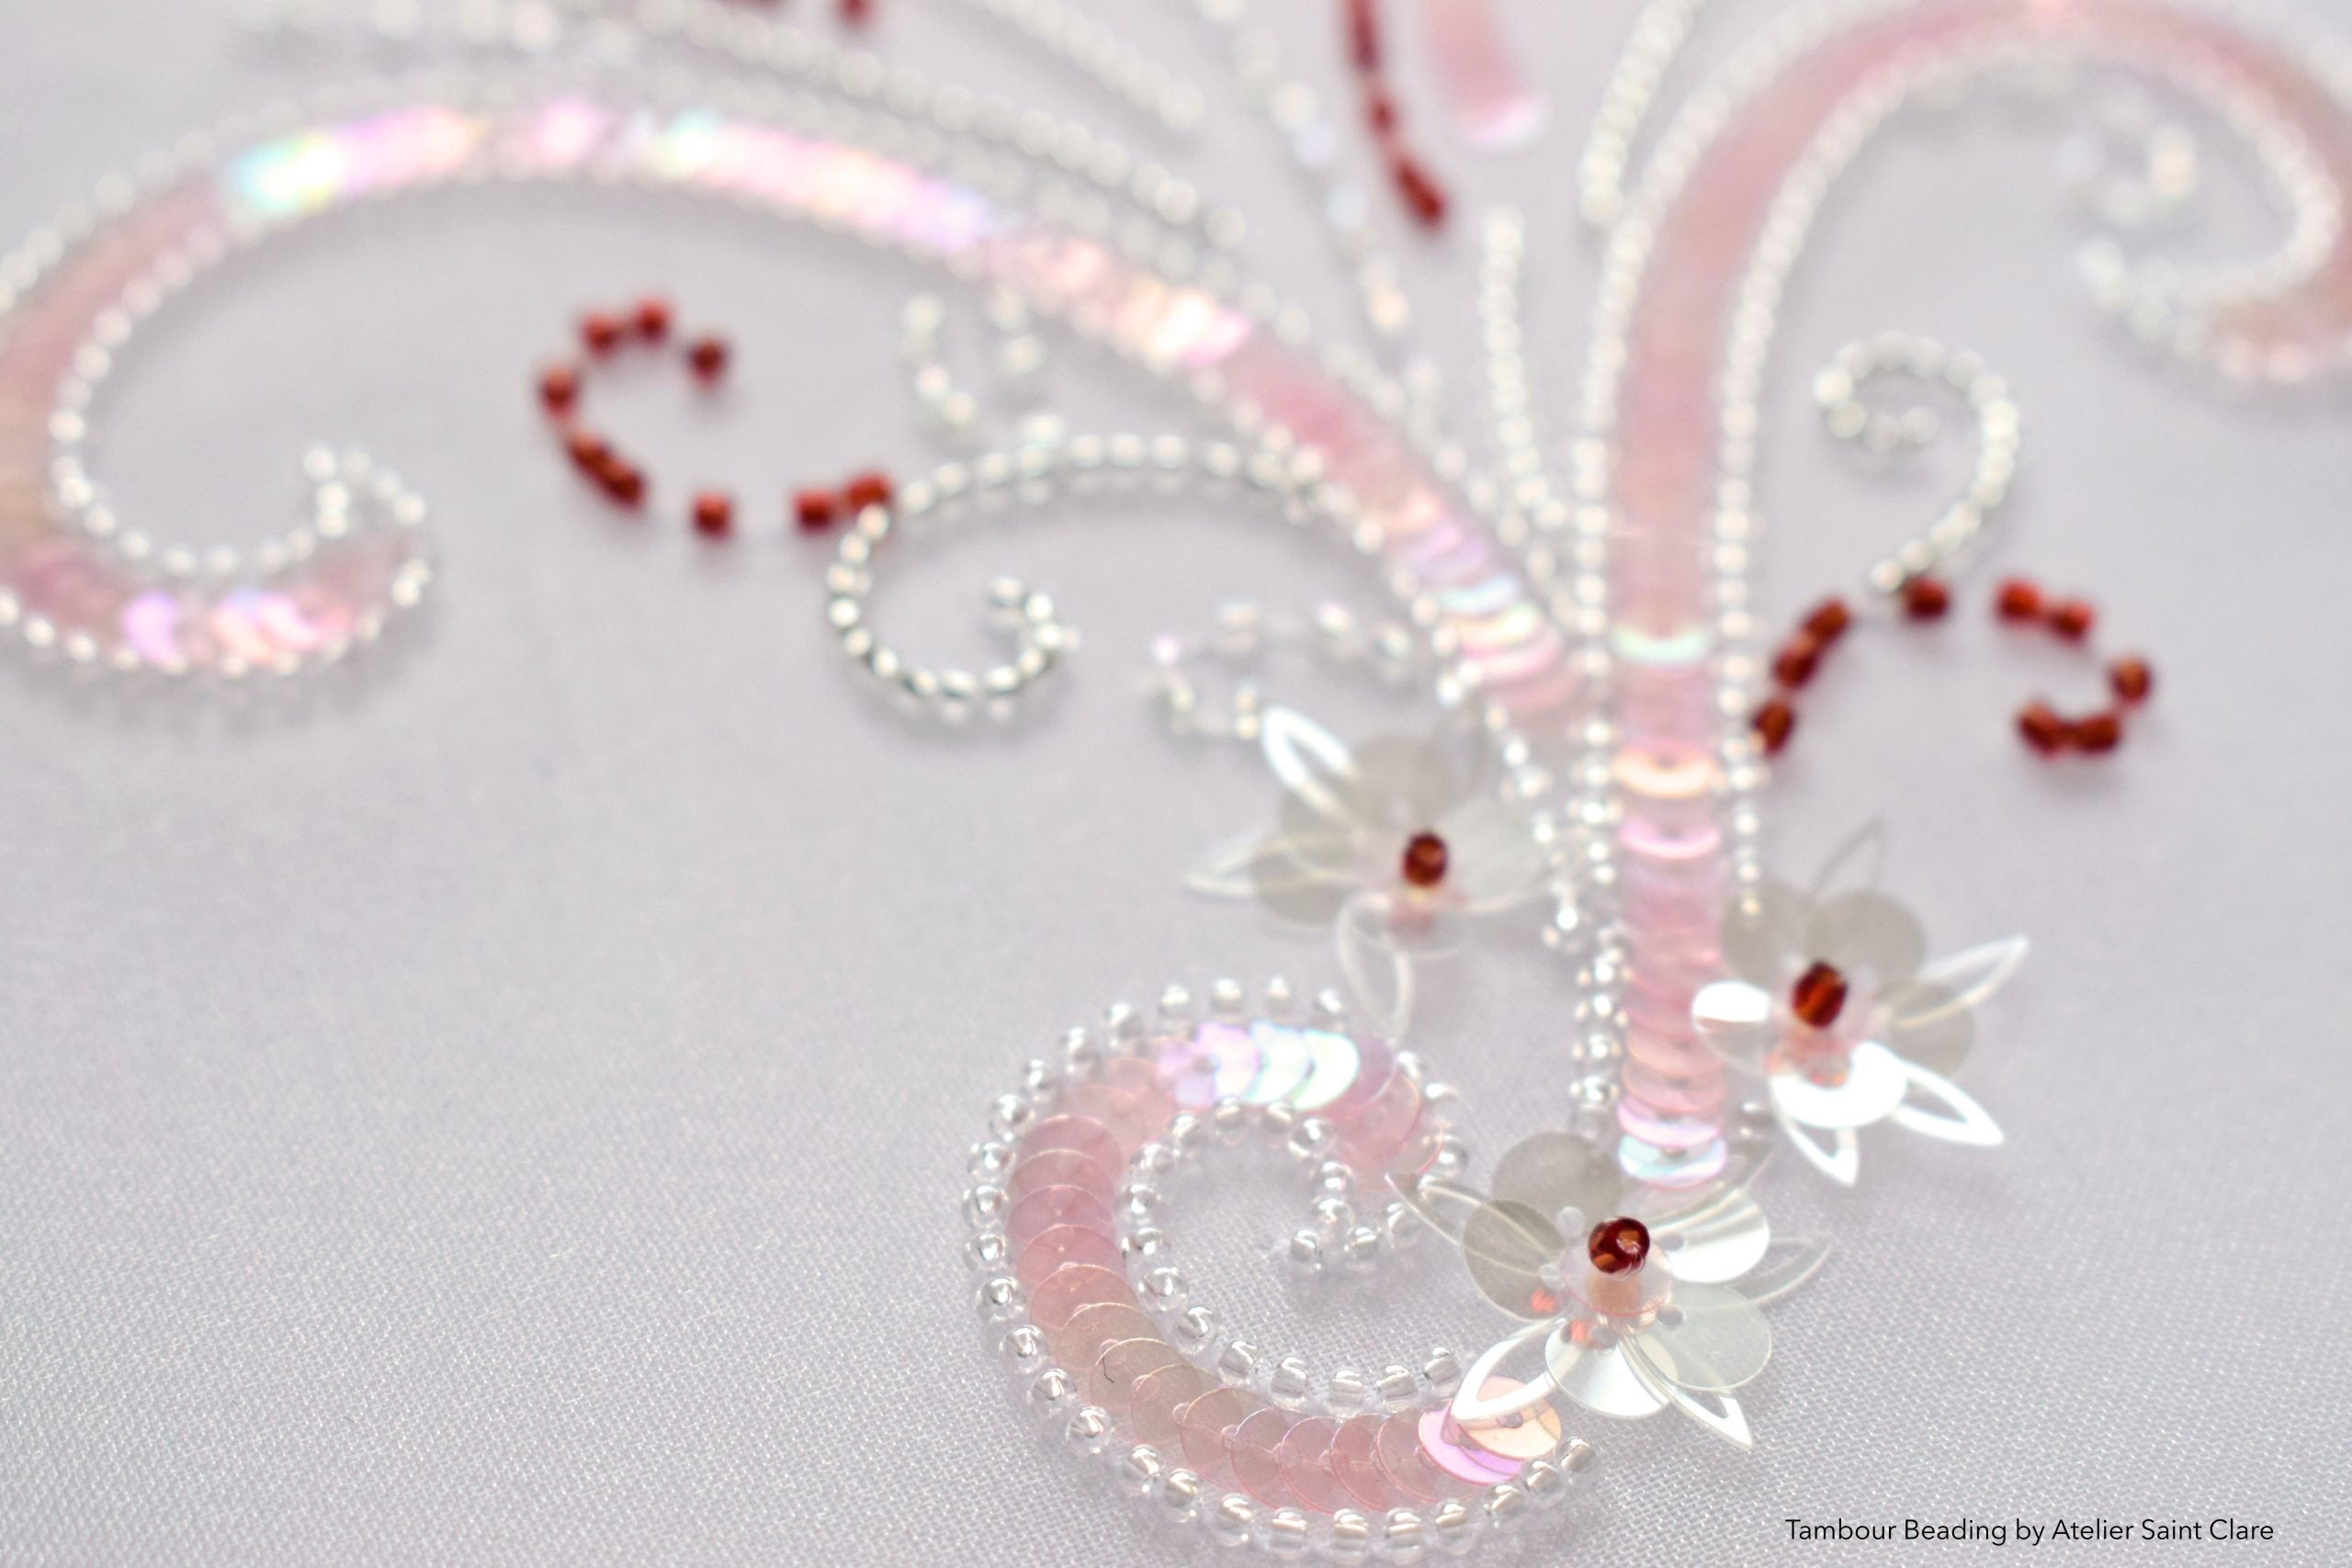 Tambour Beading embroidery